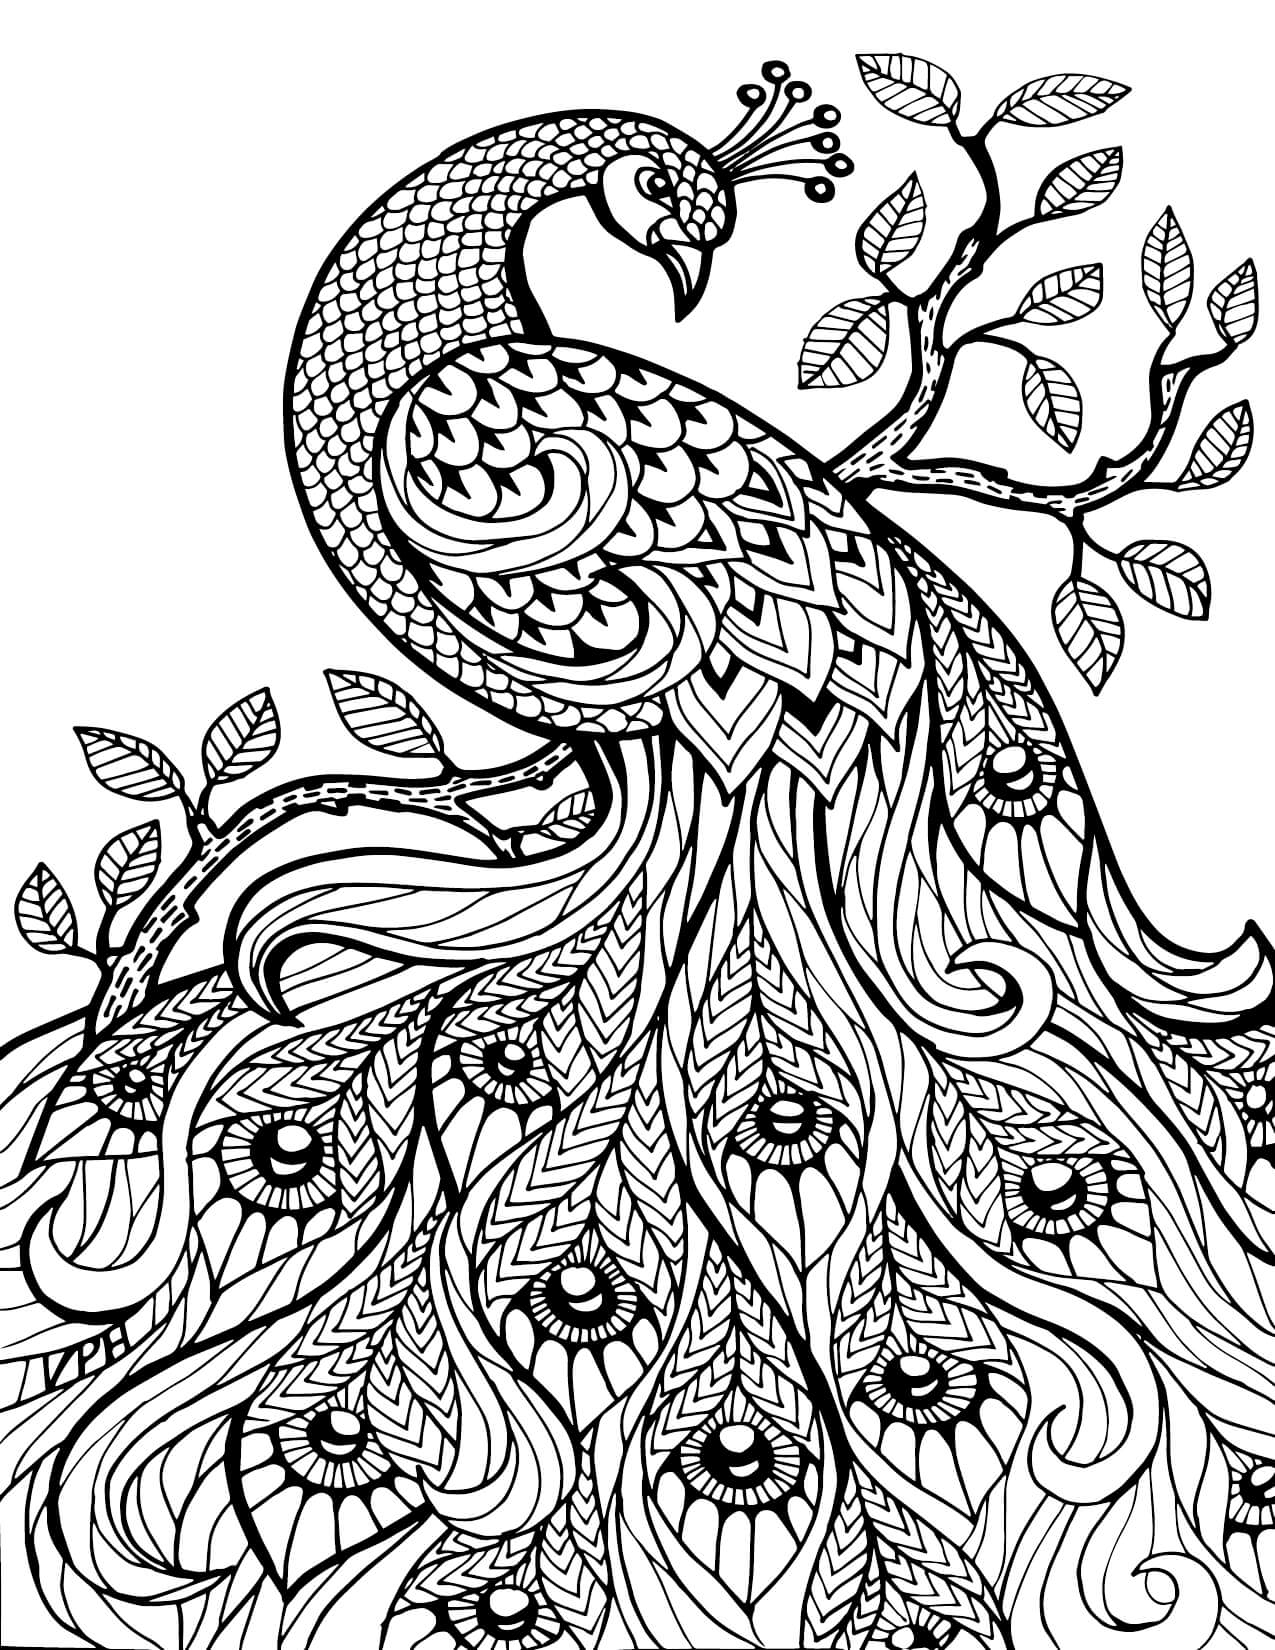 challenging coloring sheets coloring pages difficult but fun coloring pages free and sheets coloring challenging